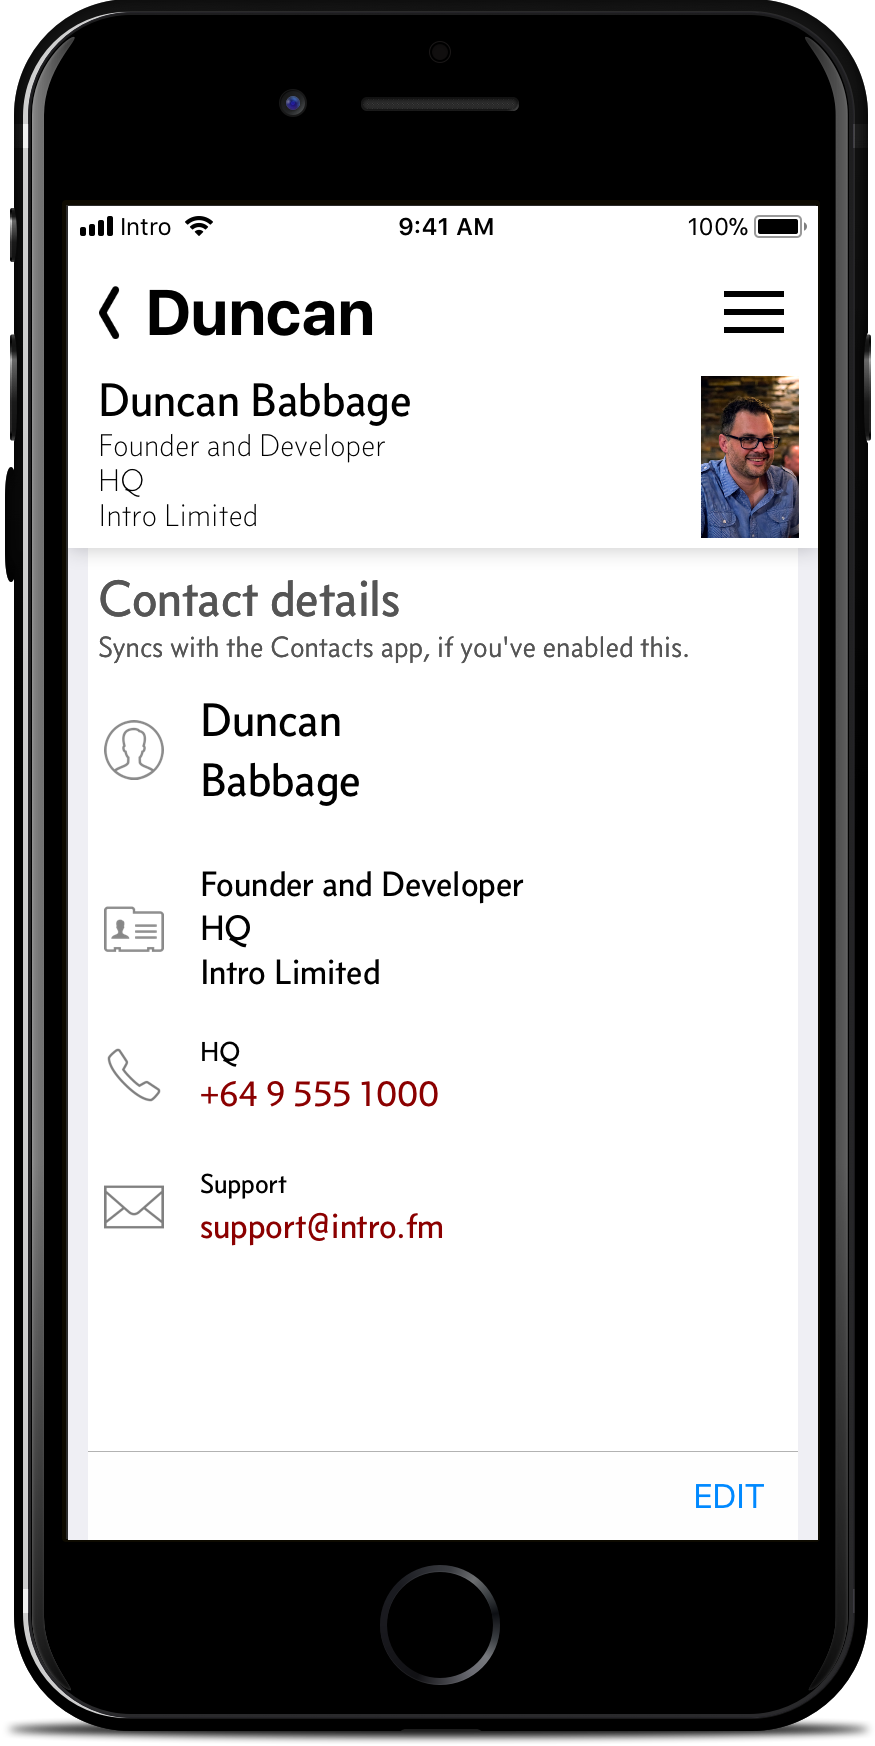 Connect. - Intro can be populated with your data from the iPhone Contacts, and keep the Contacts app up to date. (Or not, your choice.) Update contact details, sure. But Intro does far more. Easily re-order details to put the most important things first, on a per-contact basis. Merge duplicate contacts into a single entry.Try doing either of those in Contacts... you can't. Yet your Intro will update Contacts with these changes too.And of course, you can start calls and messages right here. You may never need to go back to Contacts again.